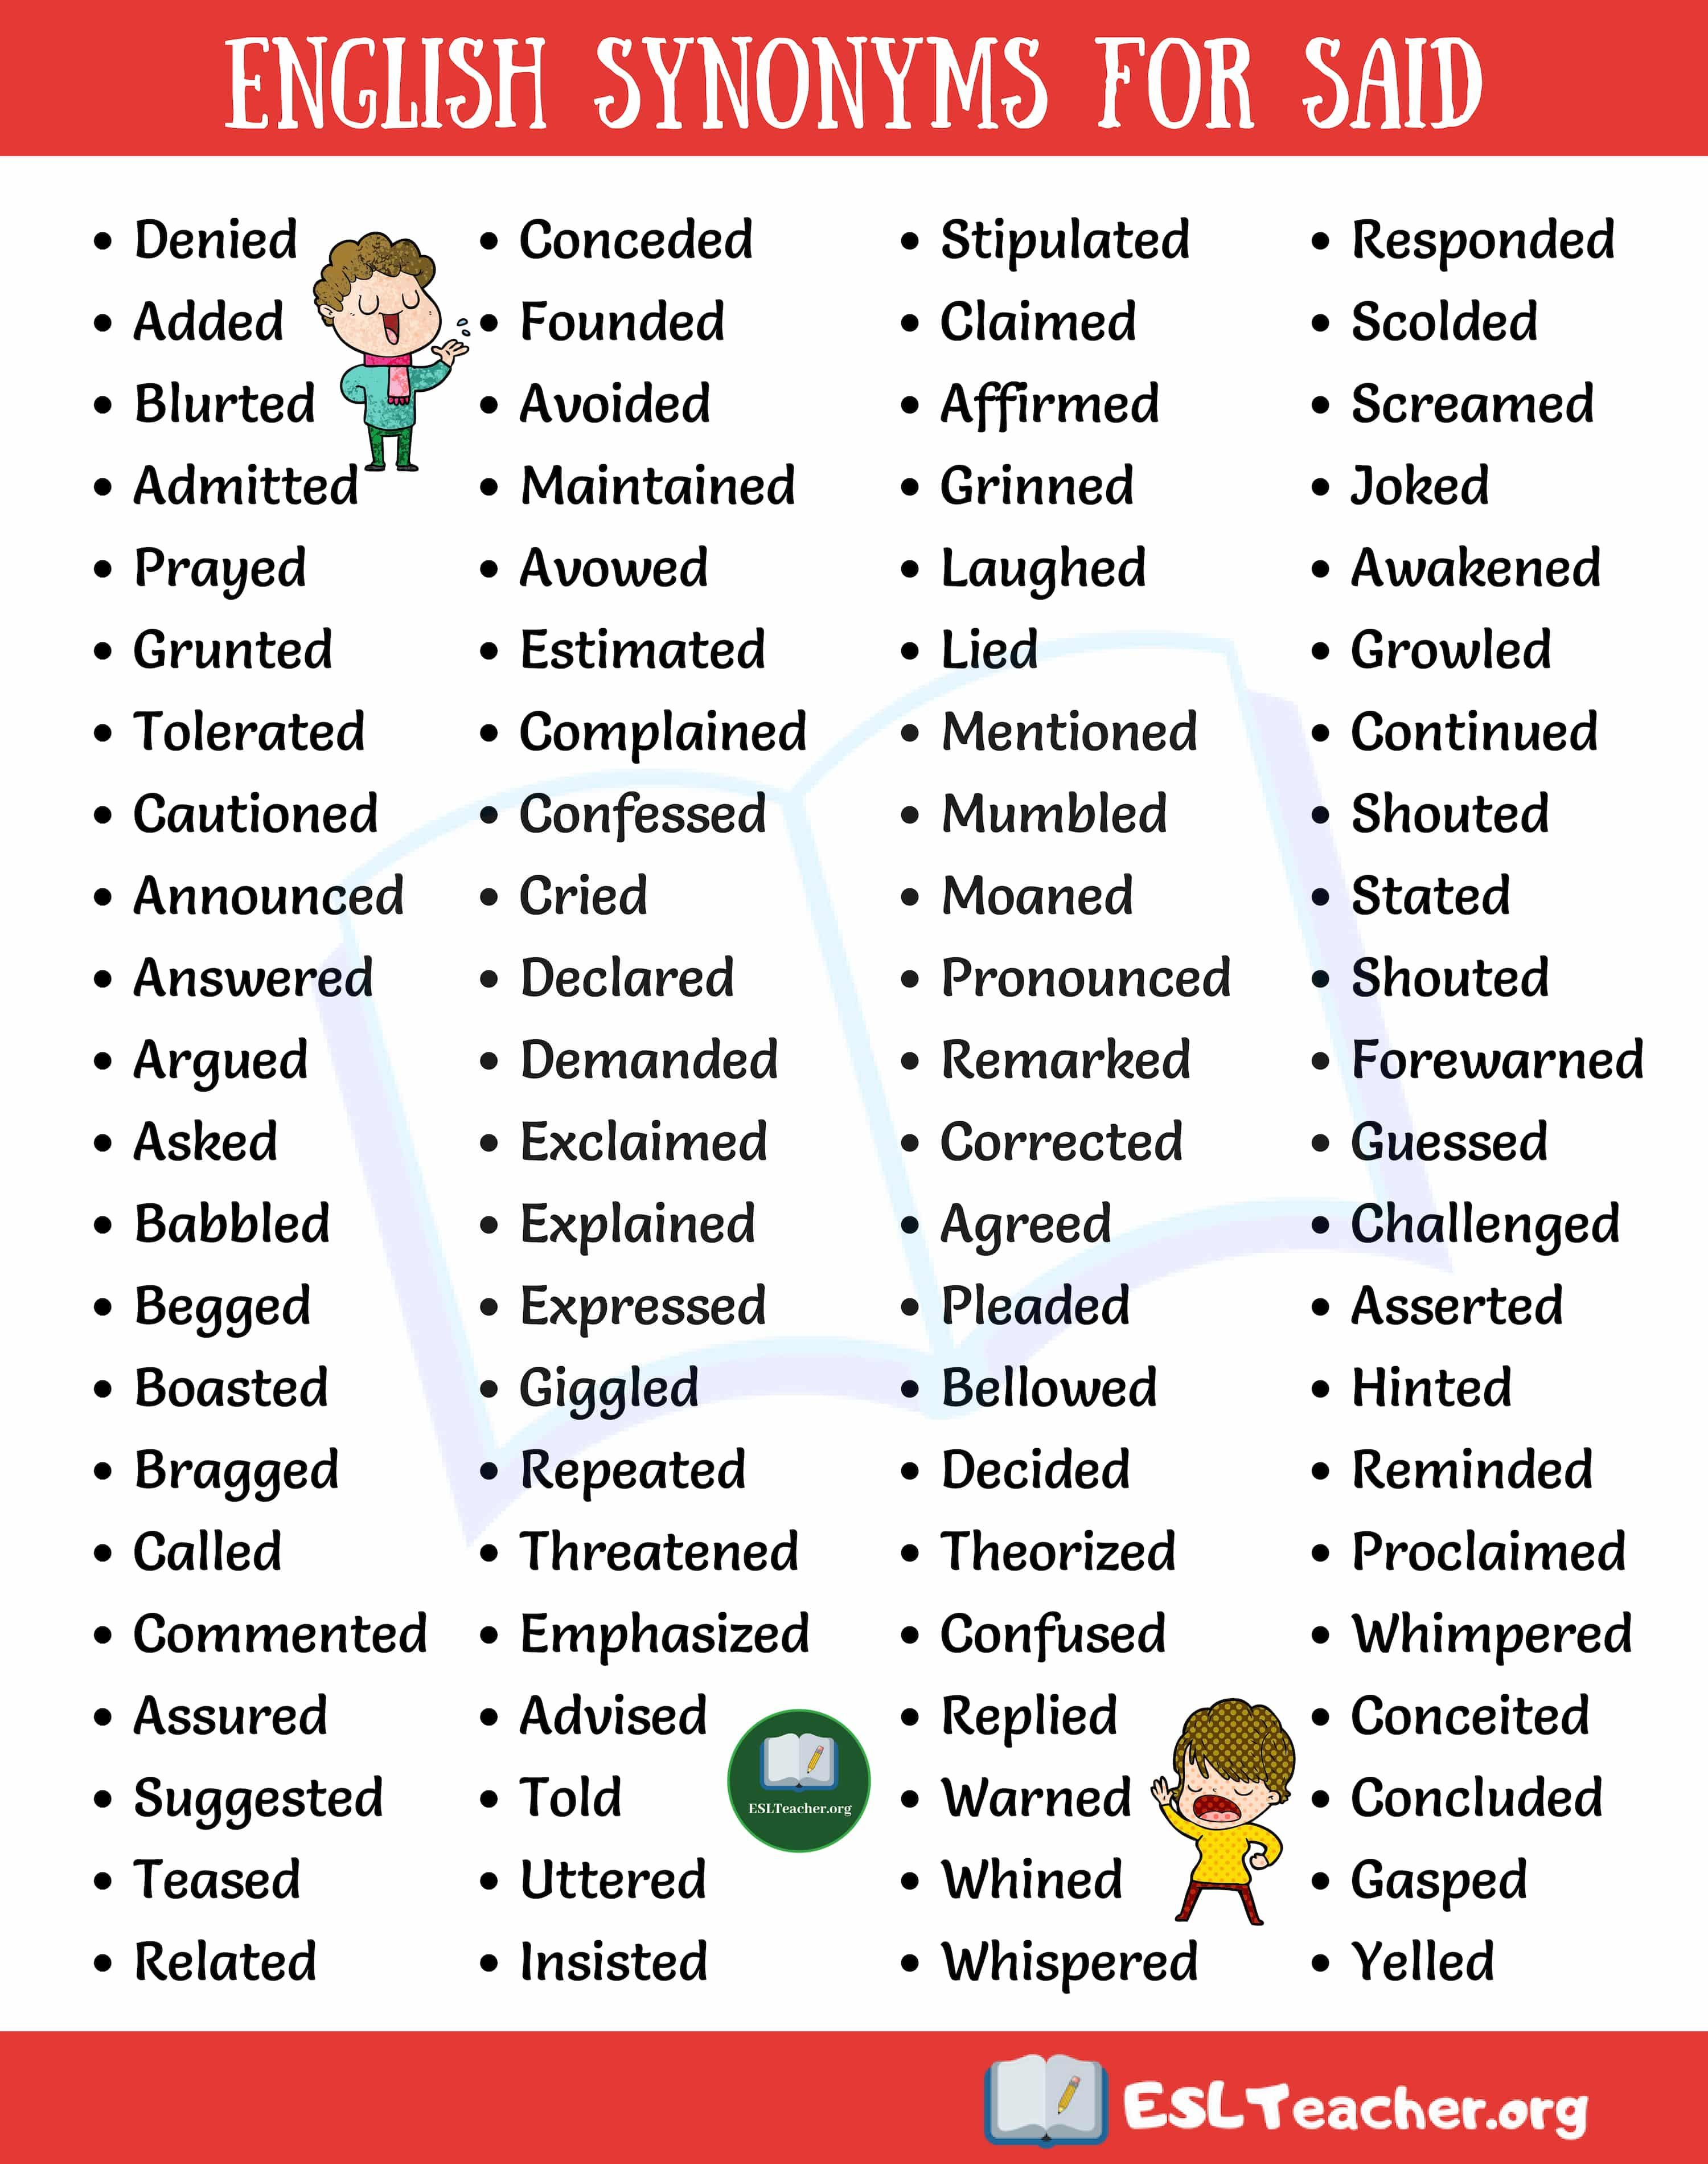 Said Synonyms: 80+ Useful Synonyms for Said to Improve Your